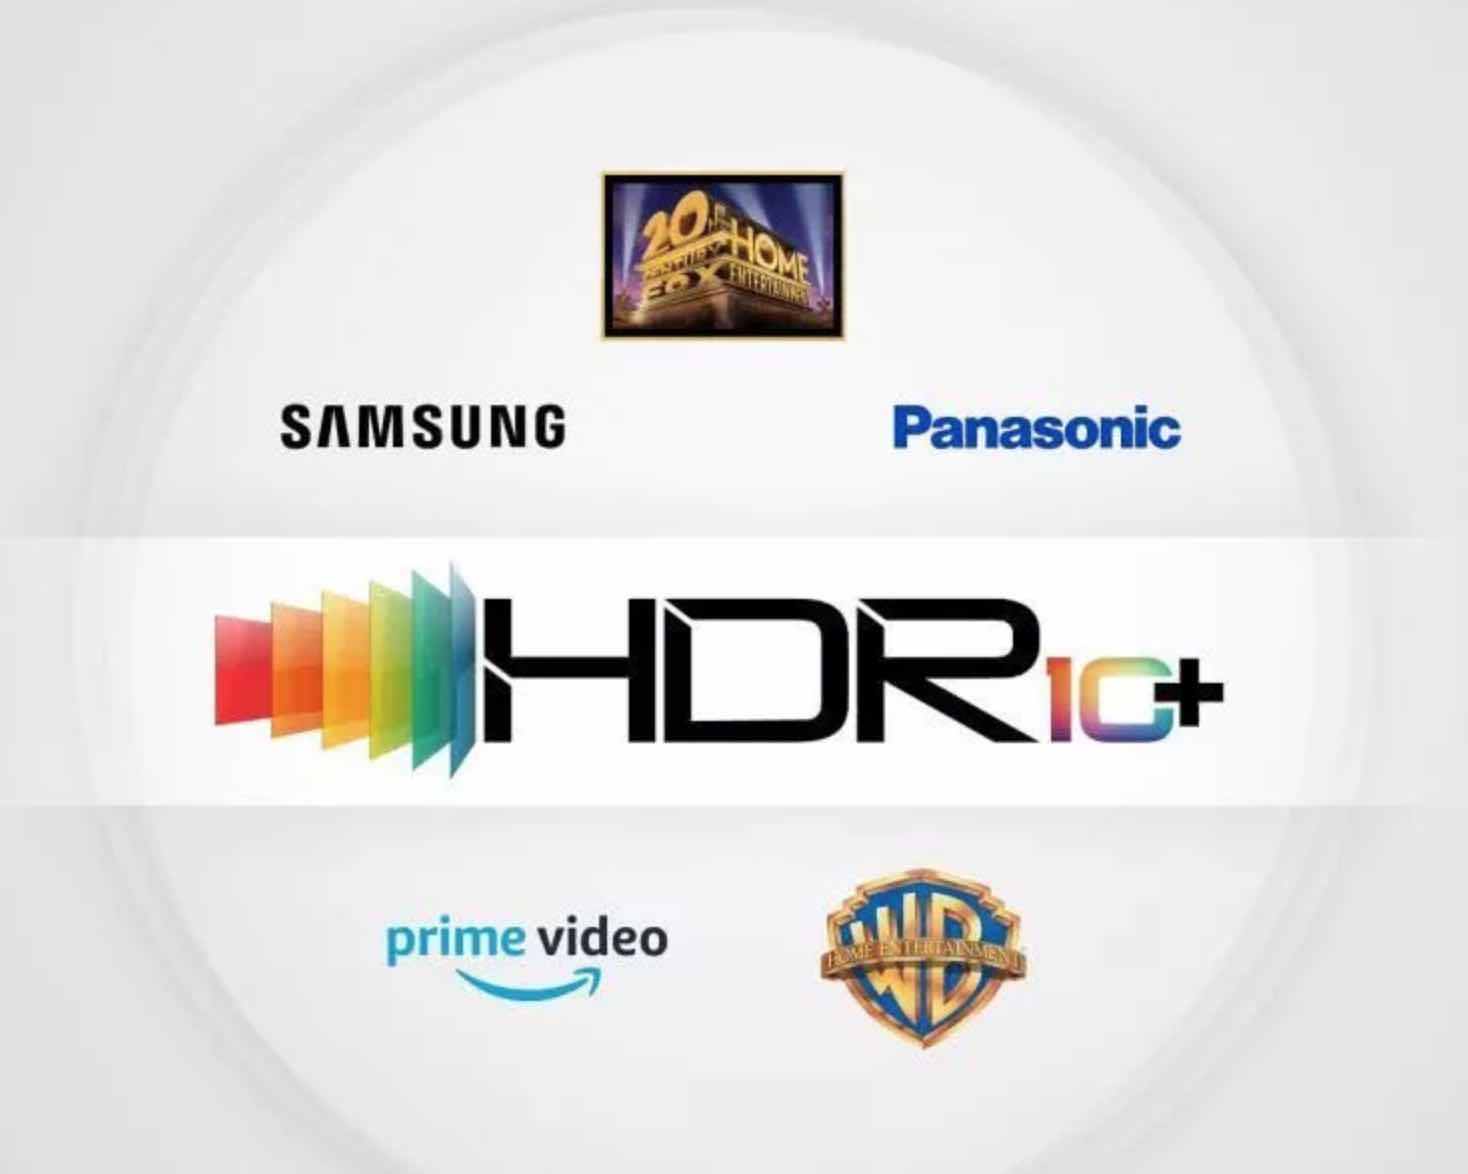 You have been hearing the word HDR10+ TV: What is HDR10+ and how does it relate to TV Displays?